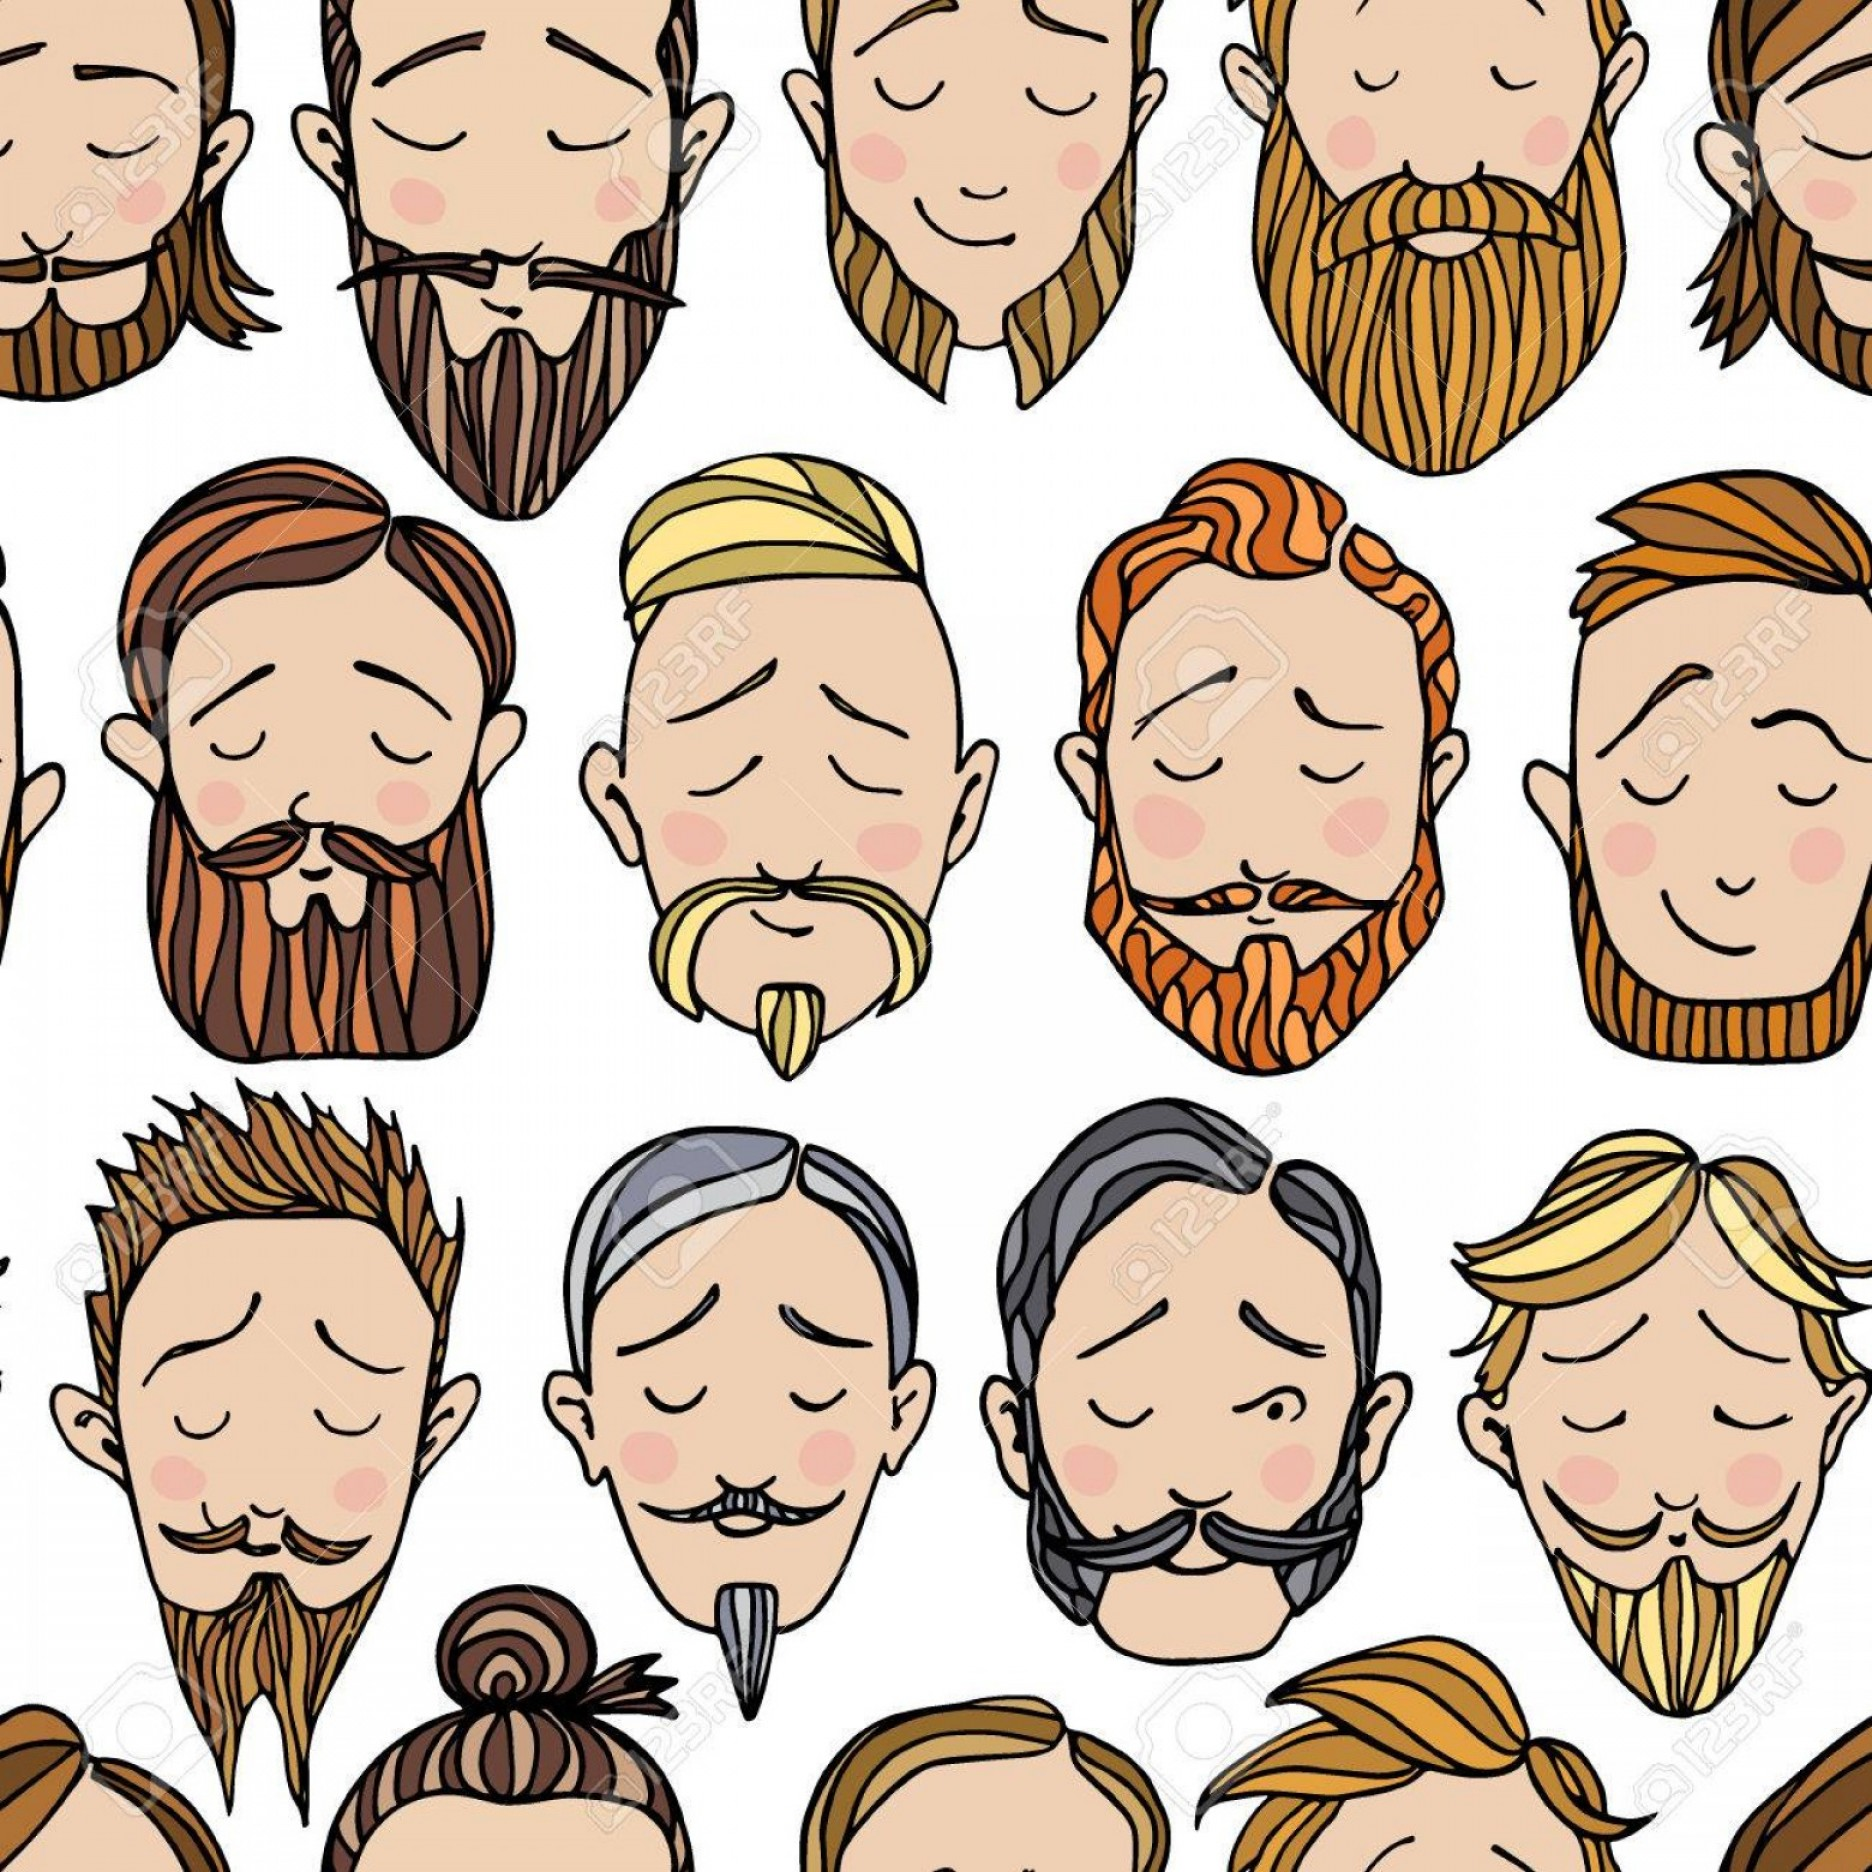 Vector Male Fade Hair: Photostock Vector Seamless Pattern With Beard Styles Illustrations Hand Drawn Cute Male Faces With Different Hair And